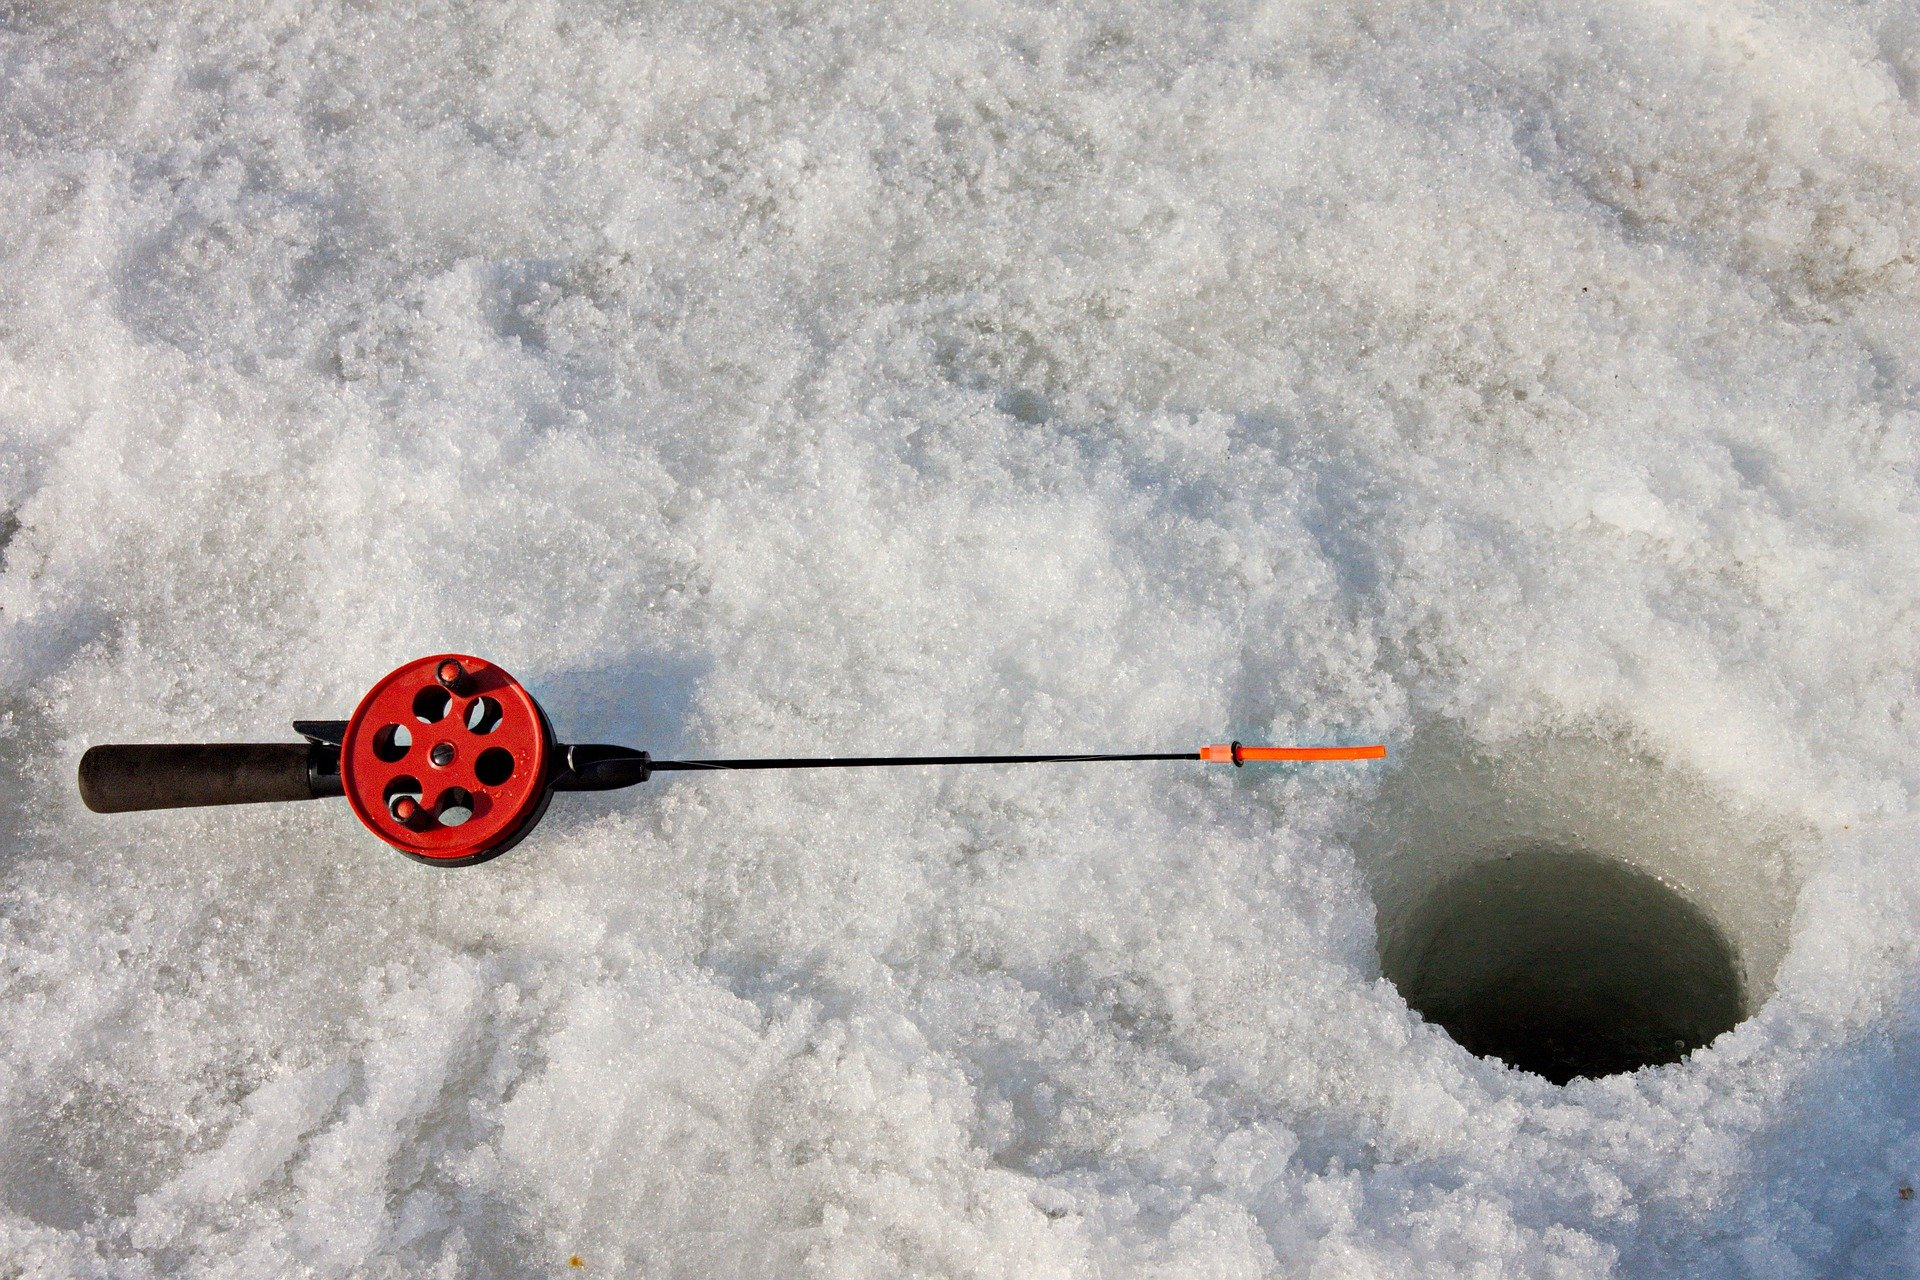 A hole in the ice with a fishing rod next to it.   Source: Pixabay.